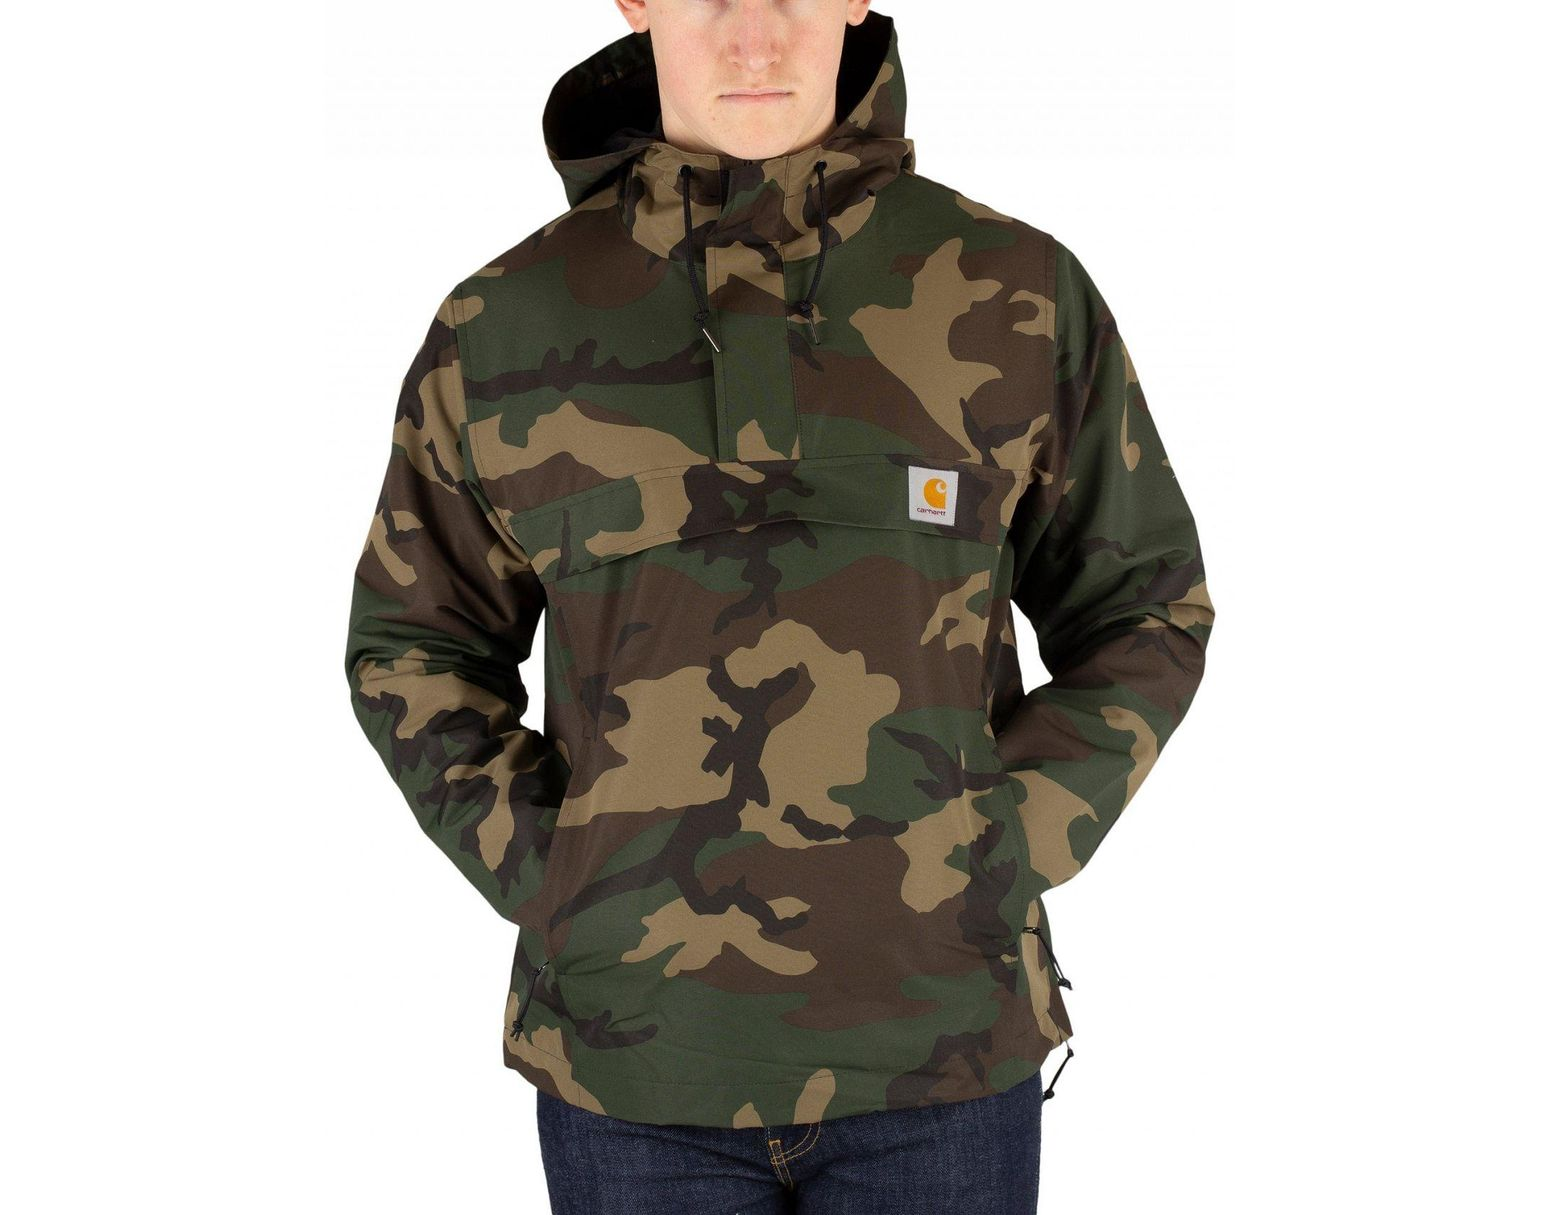 9a19a0a6 Carhartt WIP Camo Laurel Nimbus Pullover Jacket in Green for Men - Save 21%  - Lyst